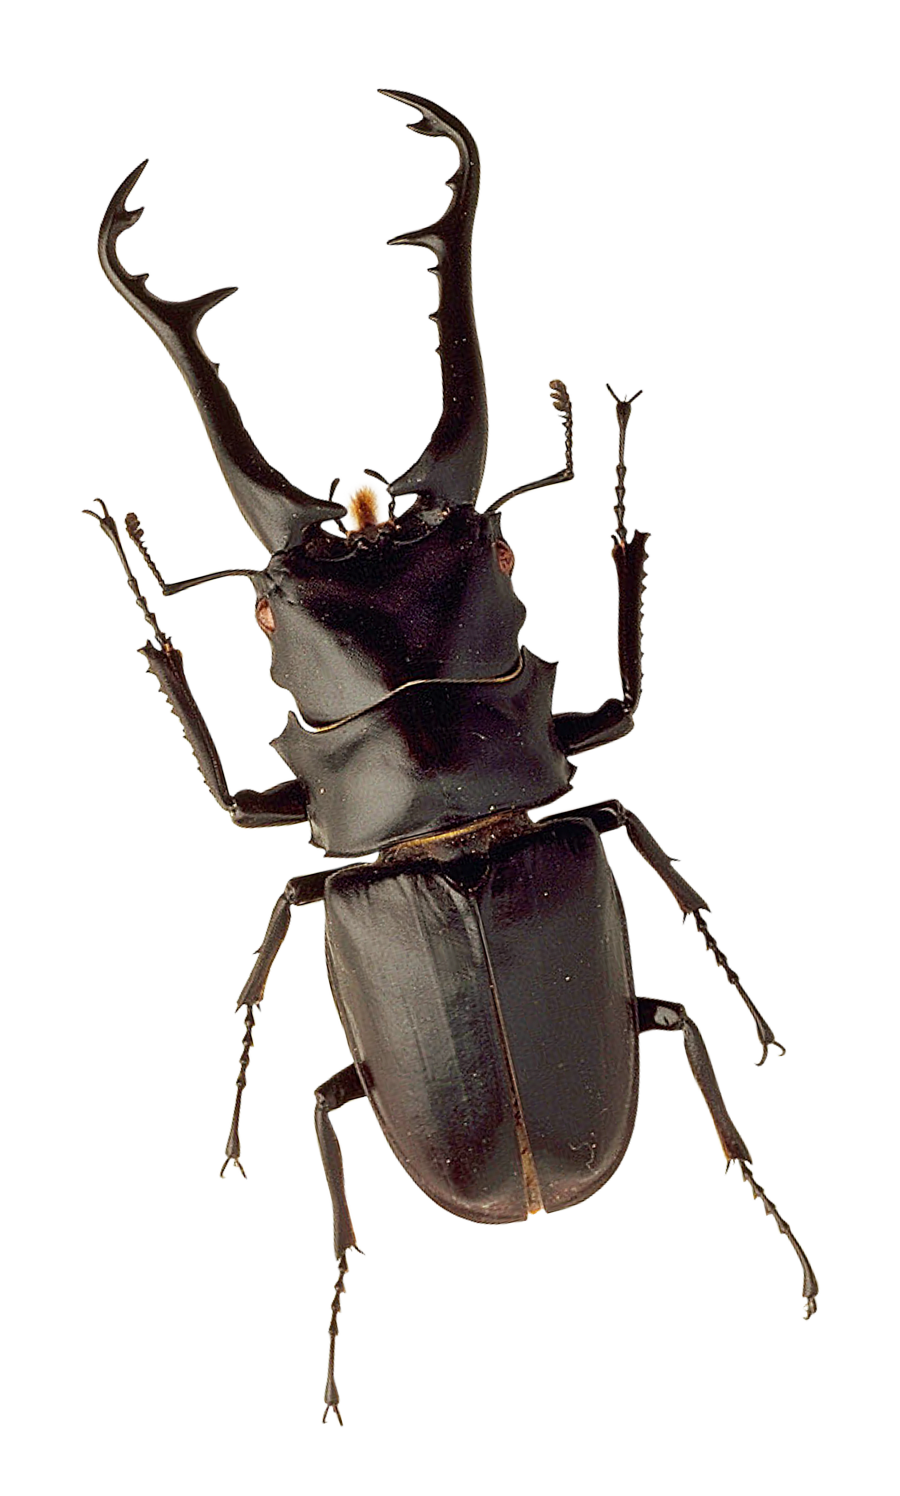 Insect PNG Image